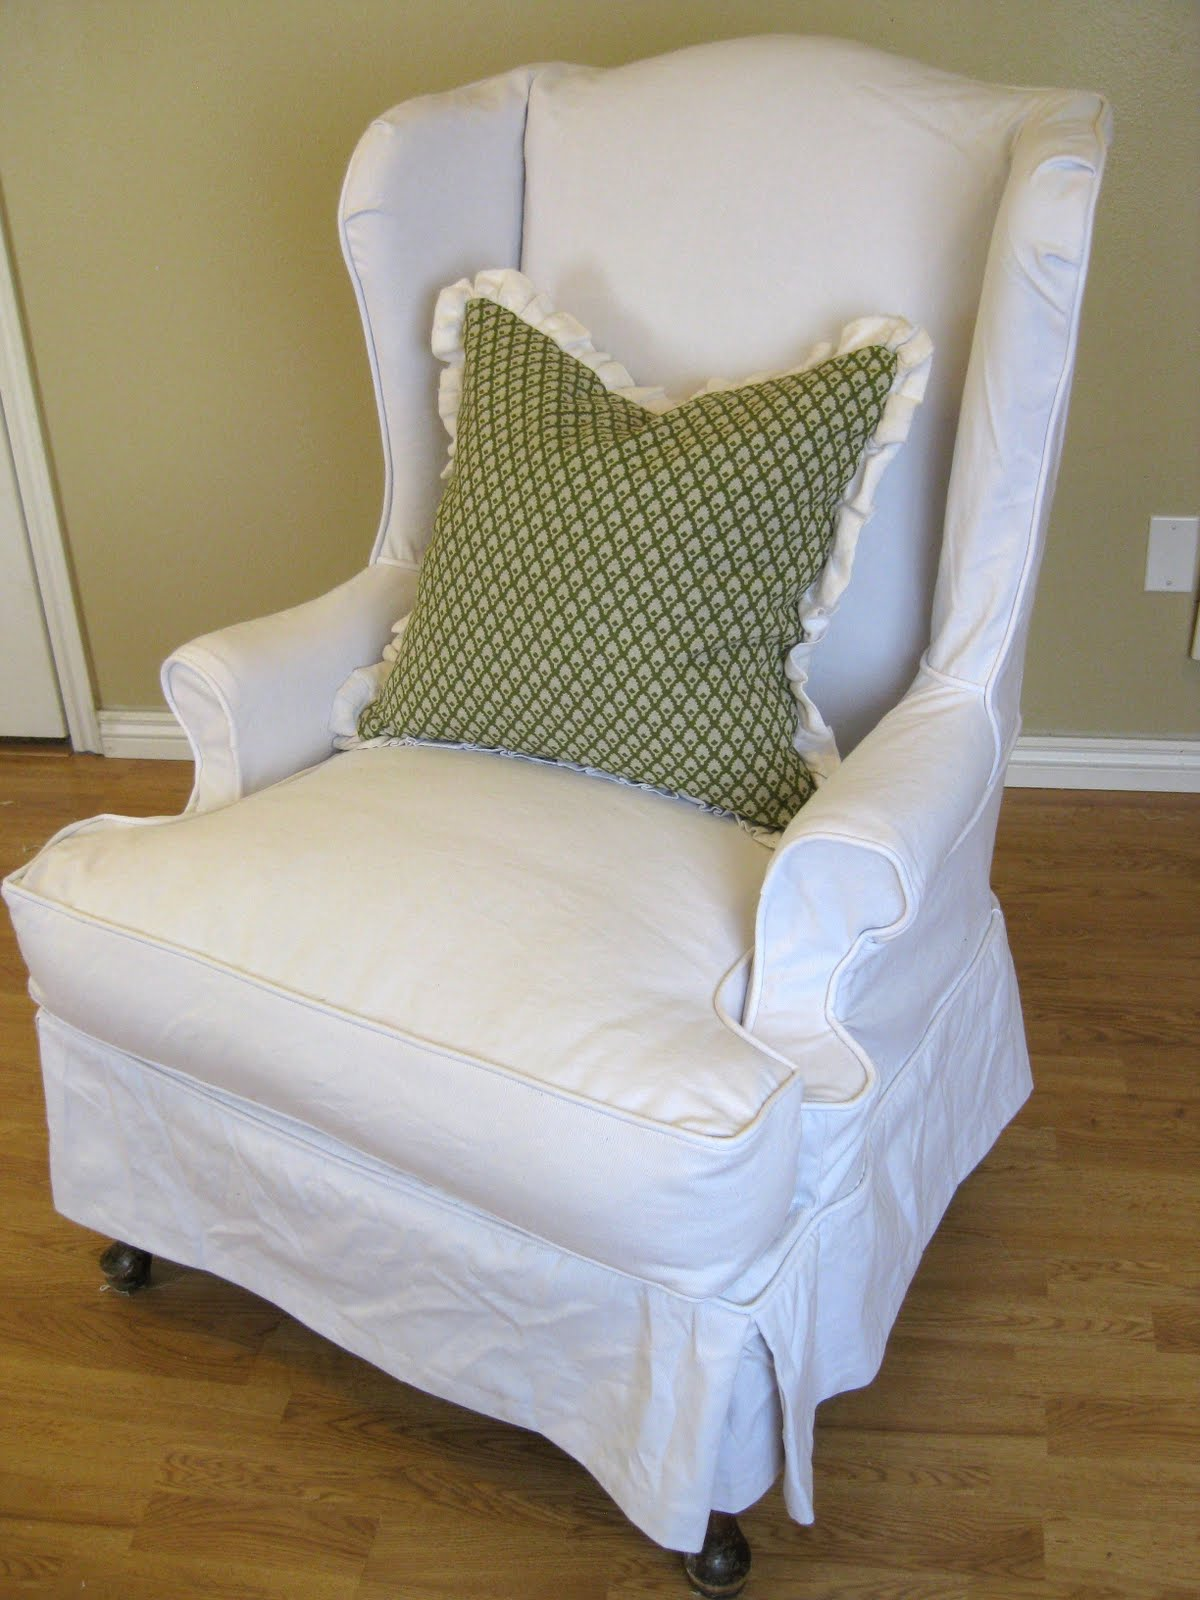 Wingback Chair Slipcover - an Ultimate Comfort of Relaxing ...